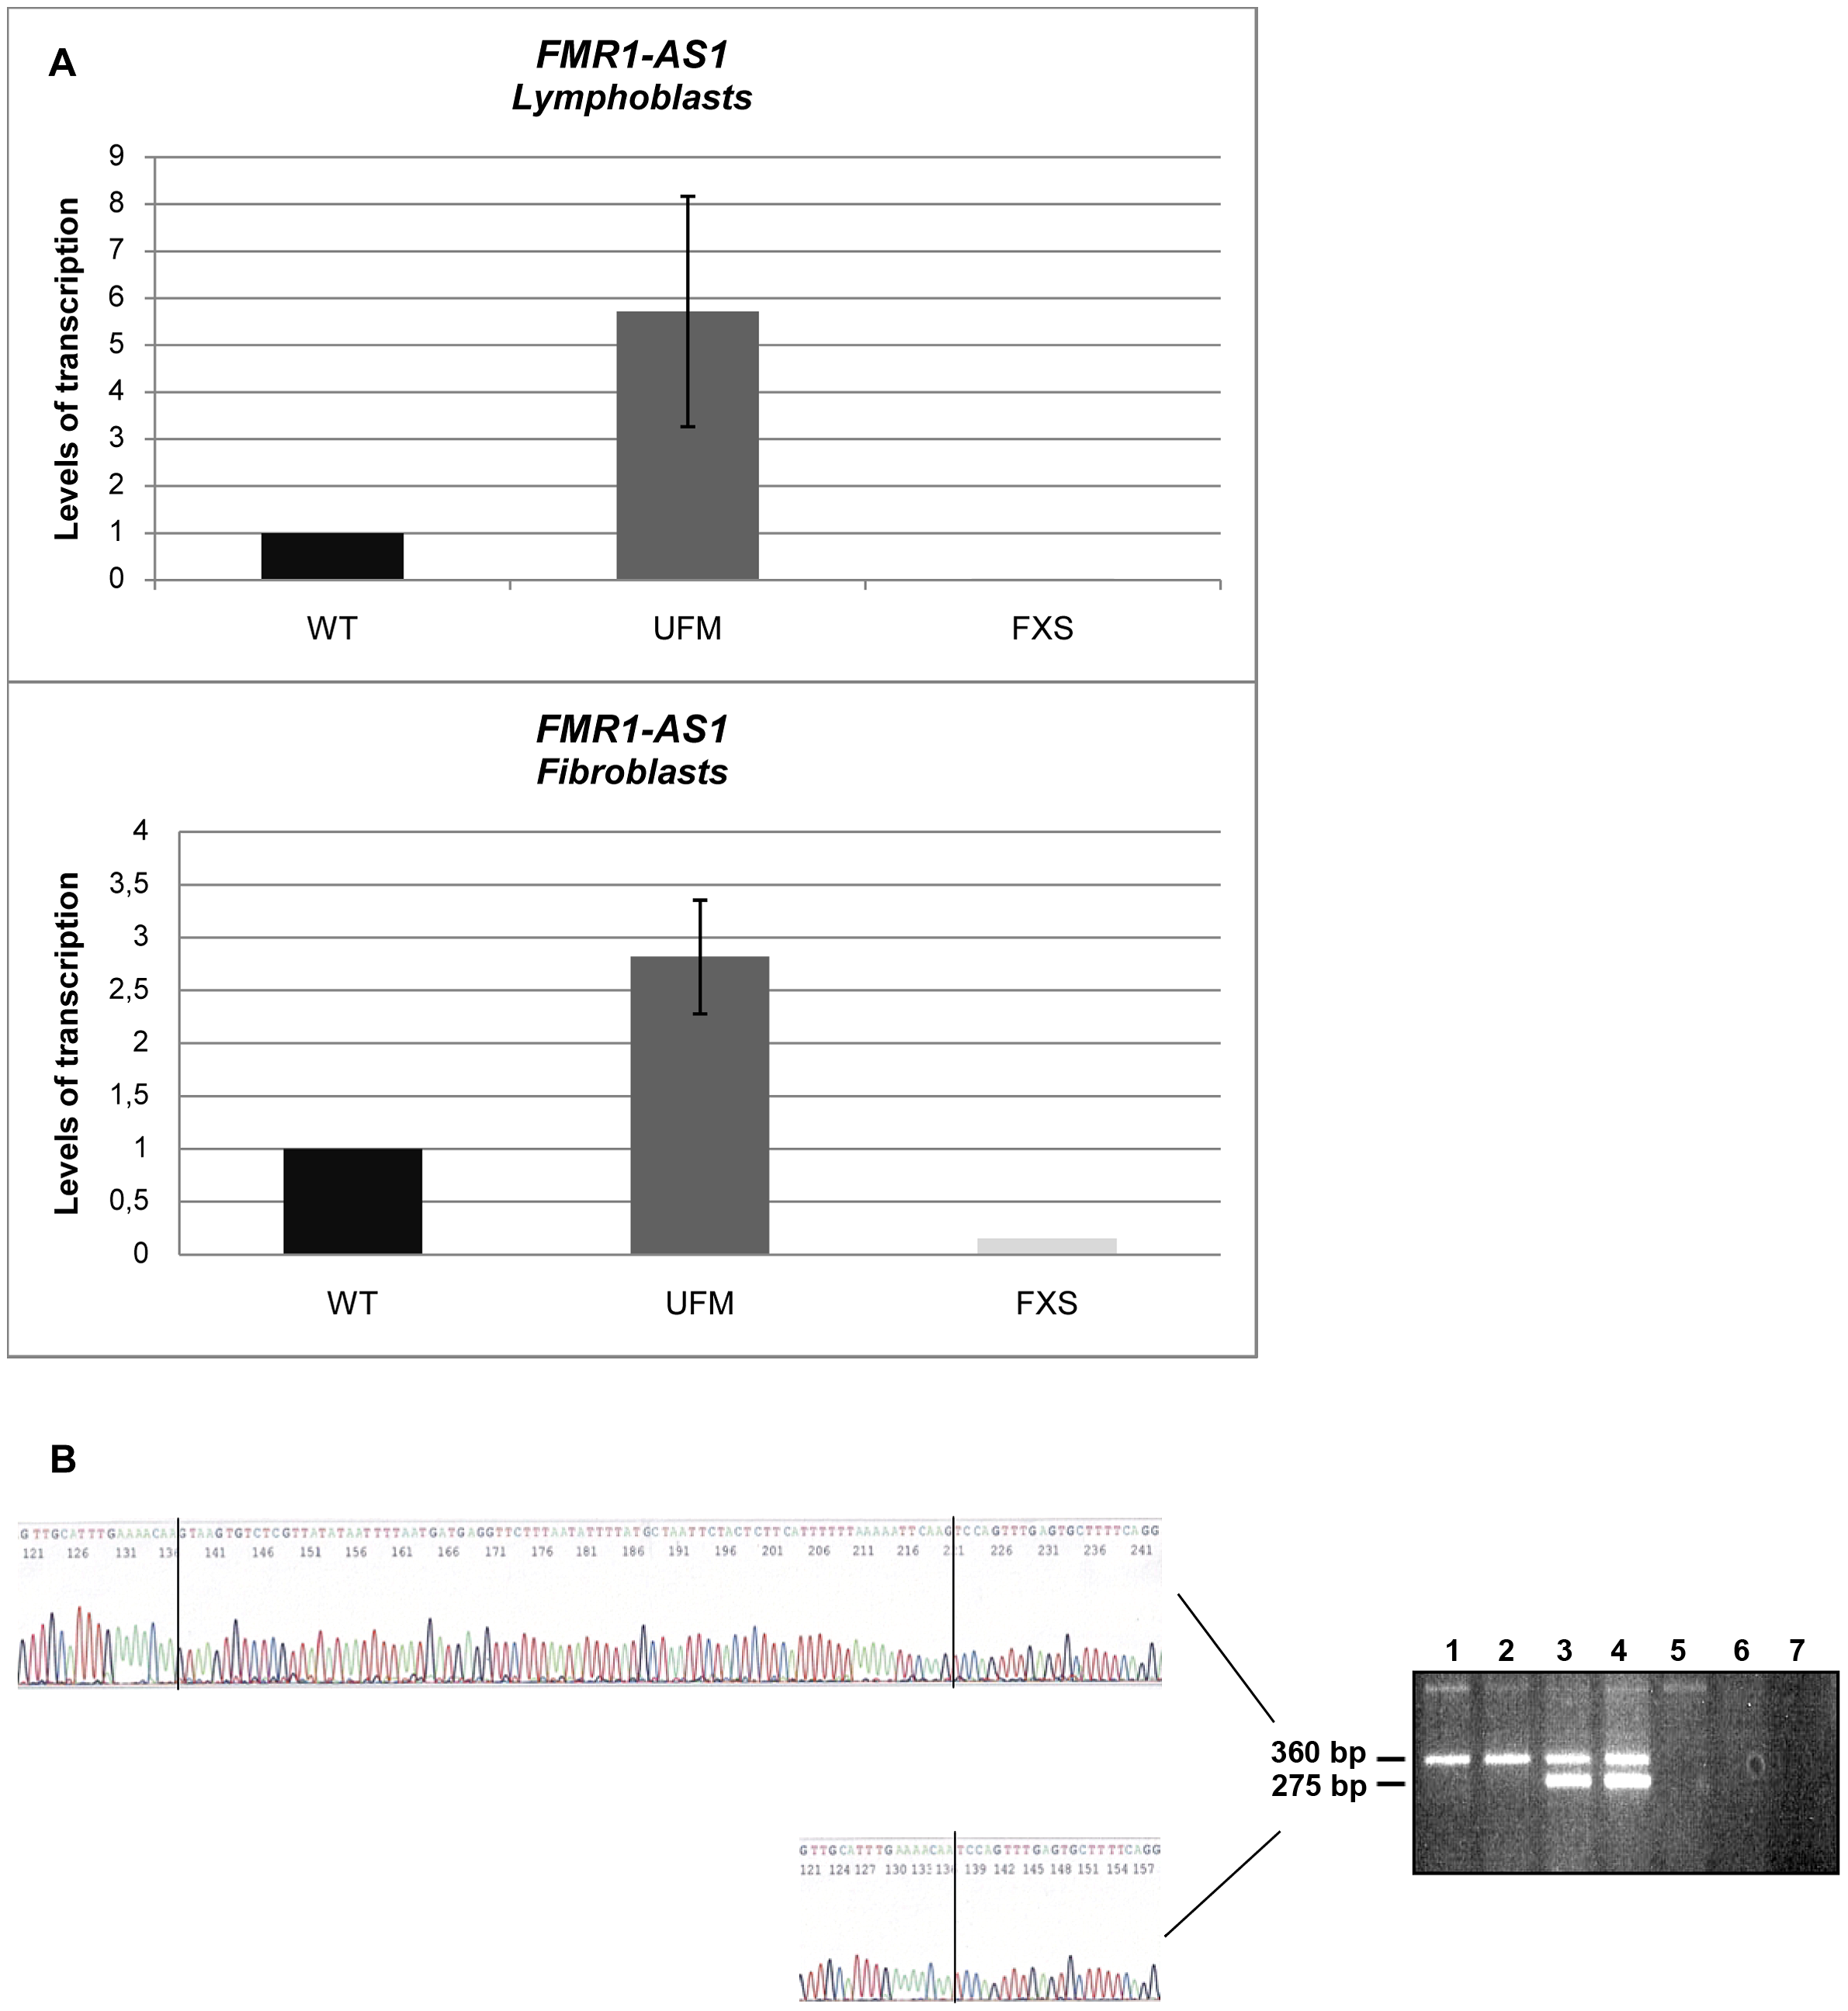 Characterization of <i>FMR1-AS1</i> transcript in UFM cell lines.